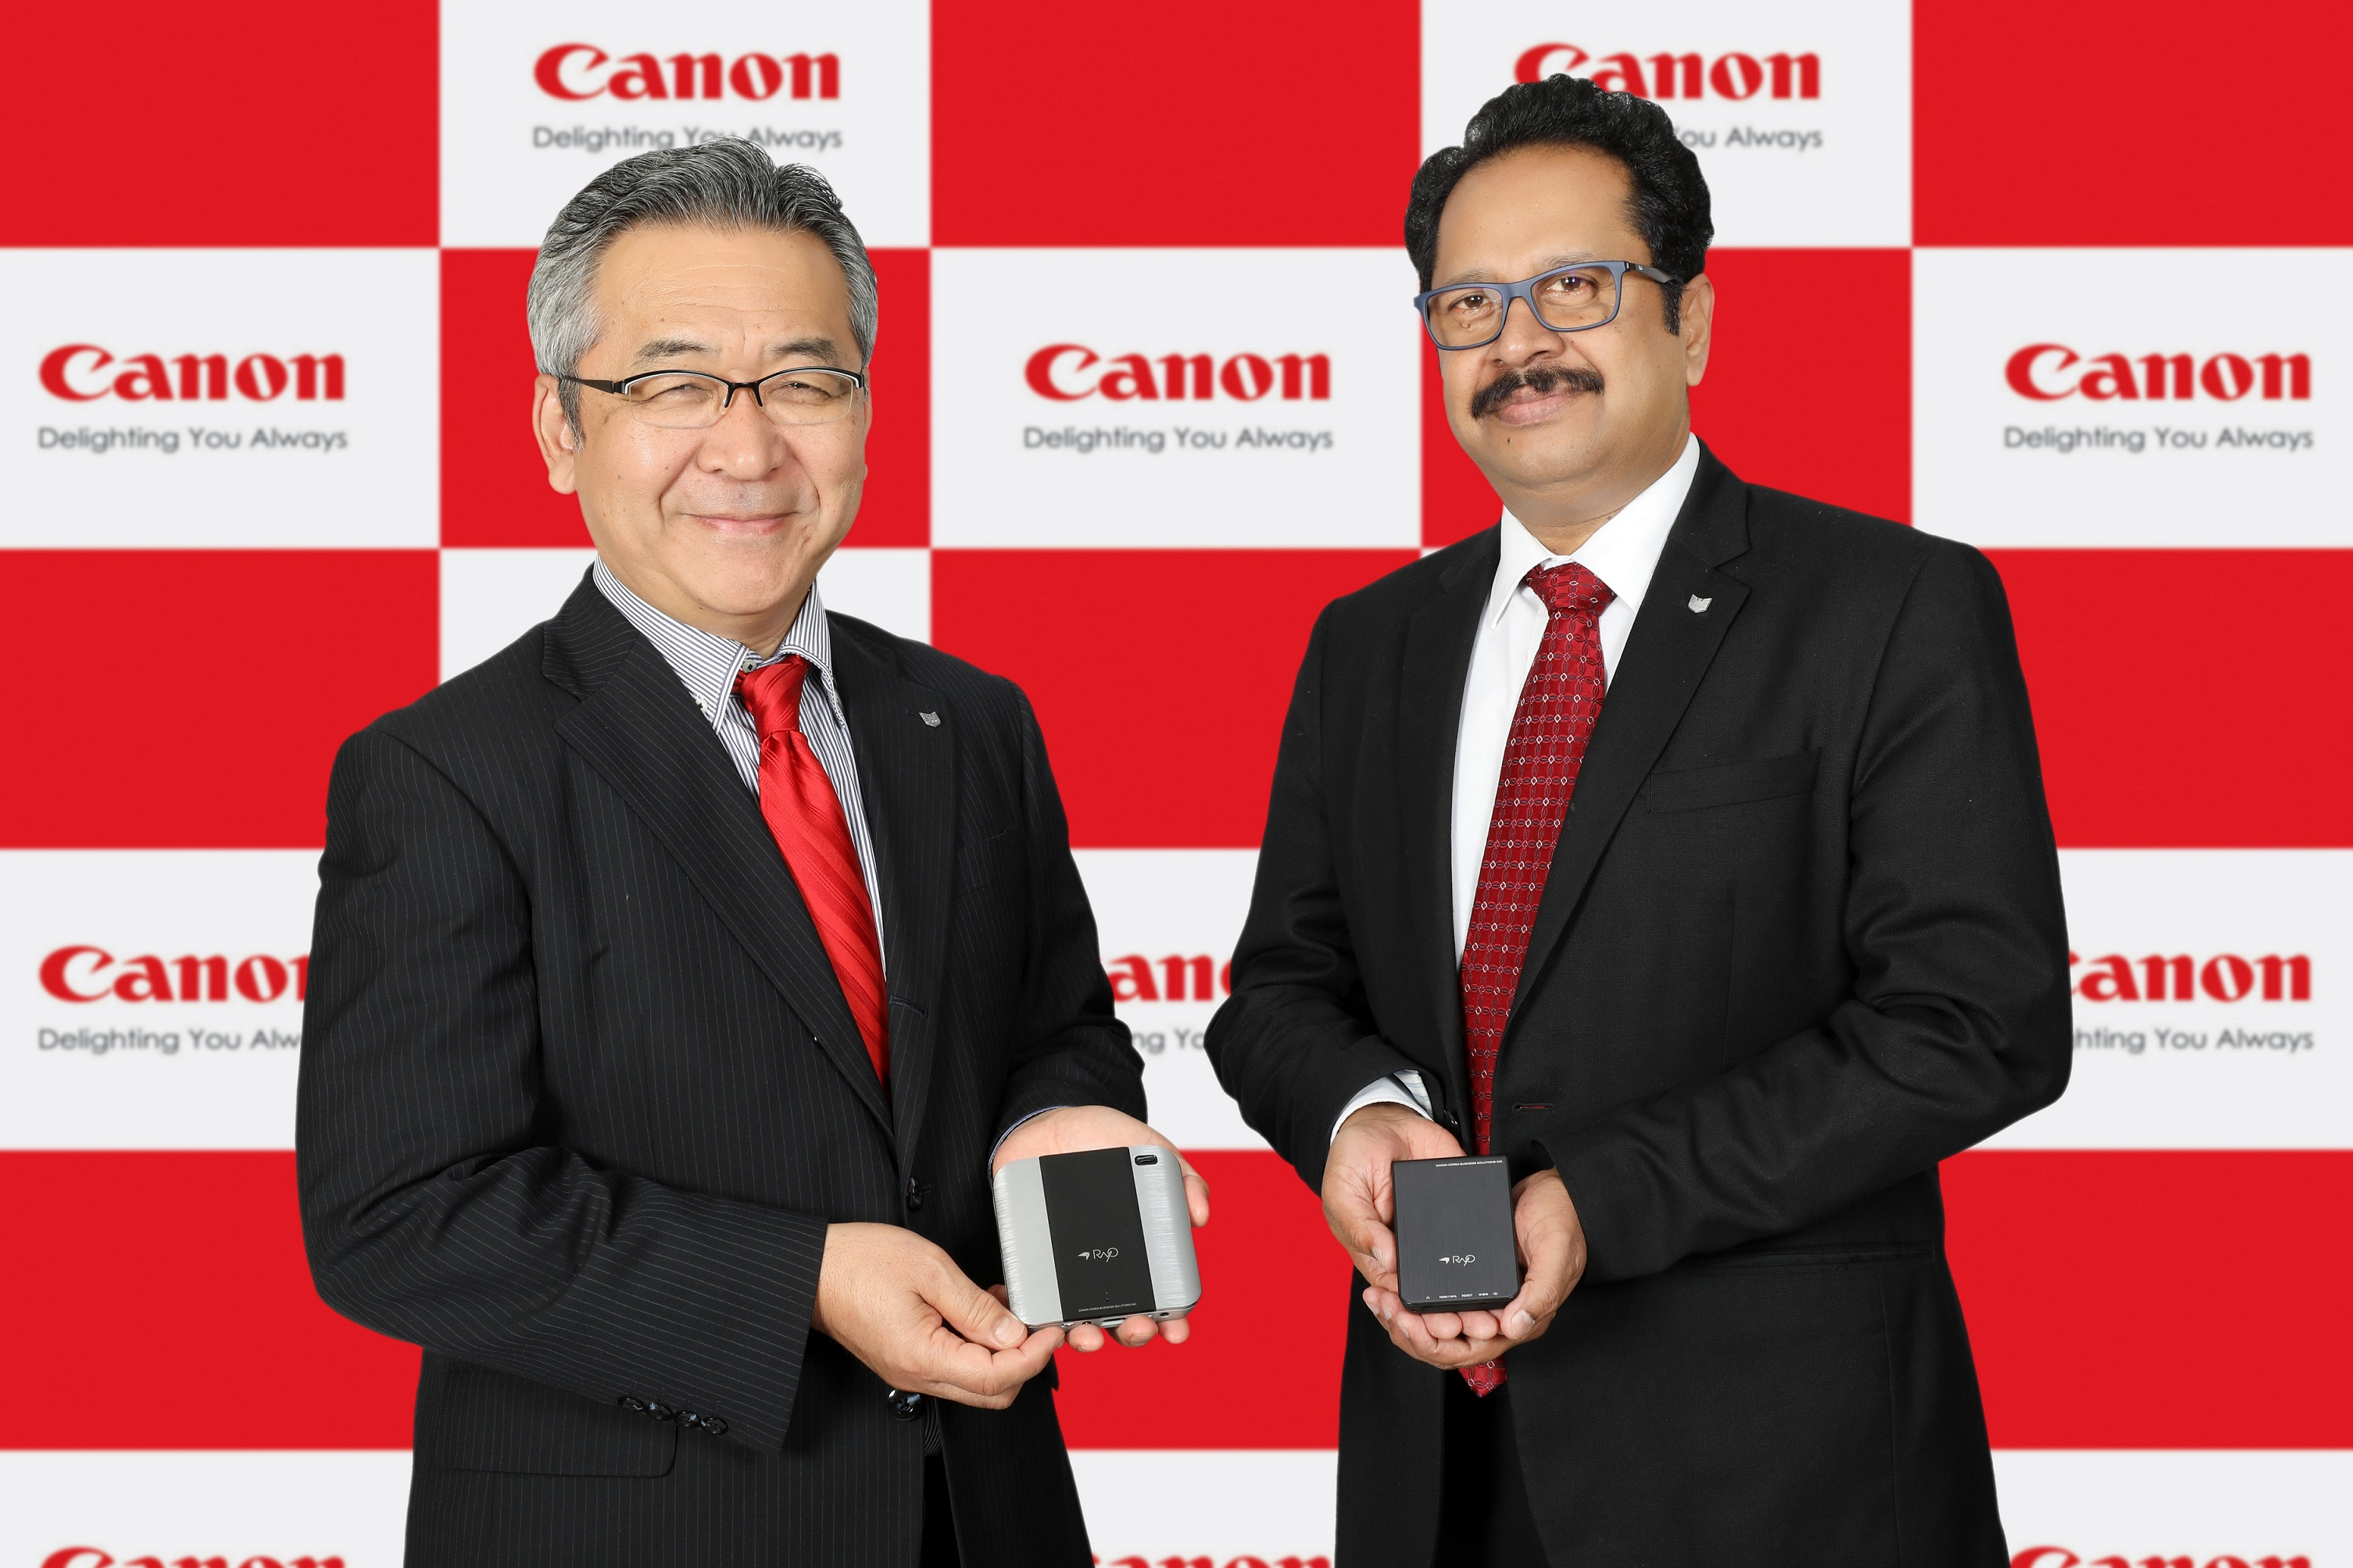 Mr. Kazutada Kobayashi, President & CEO, Canon India and Mr. K. Bhaskhar